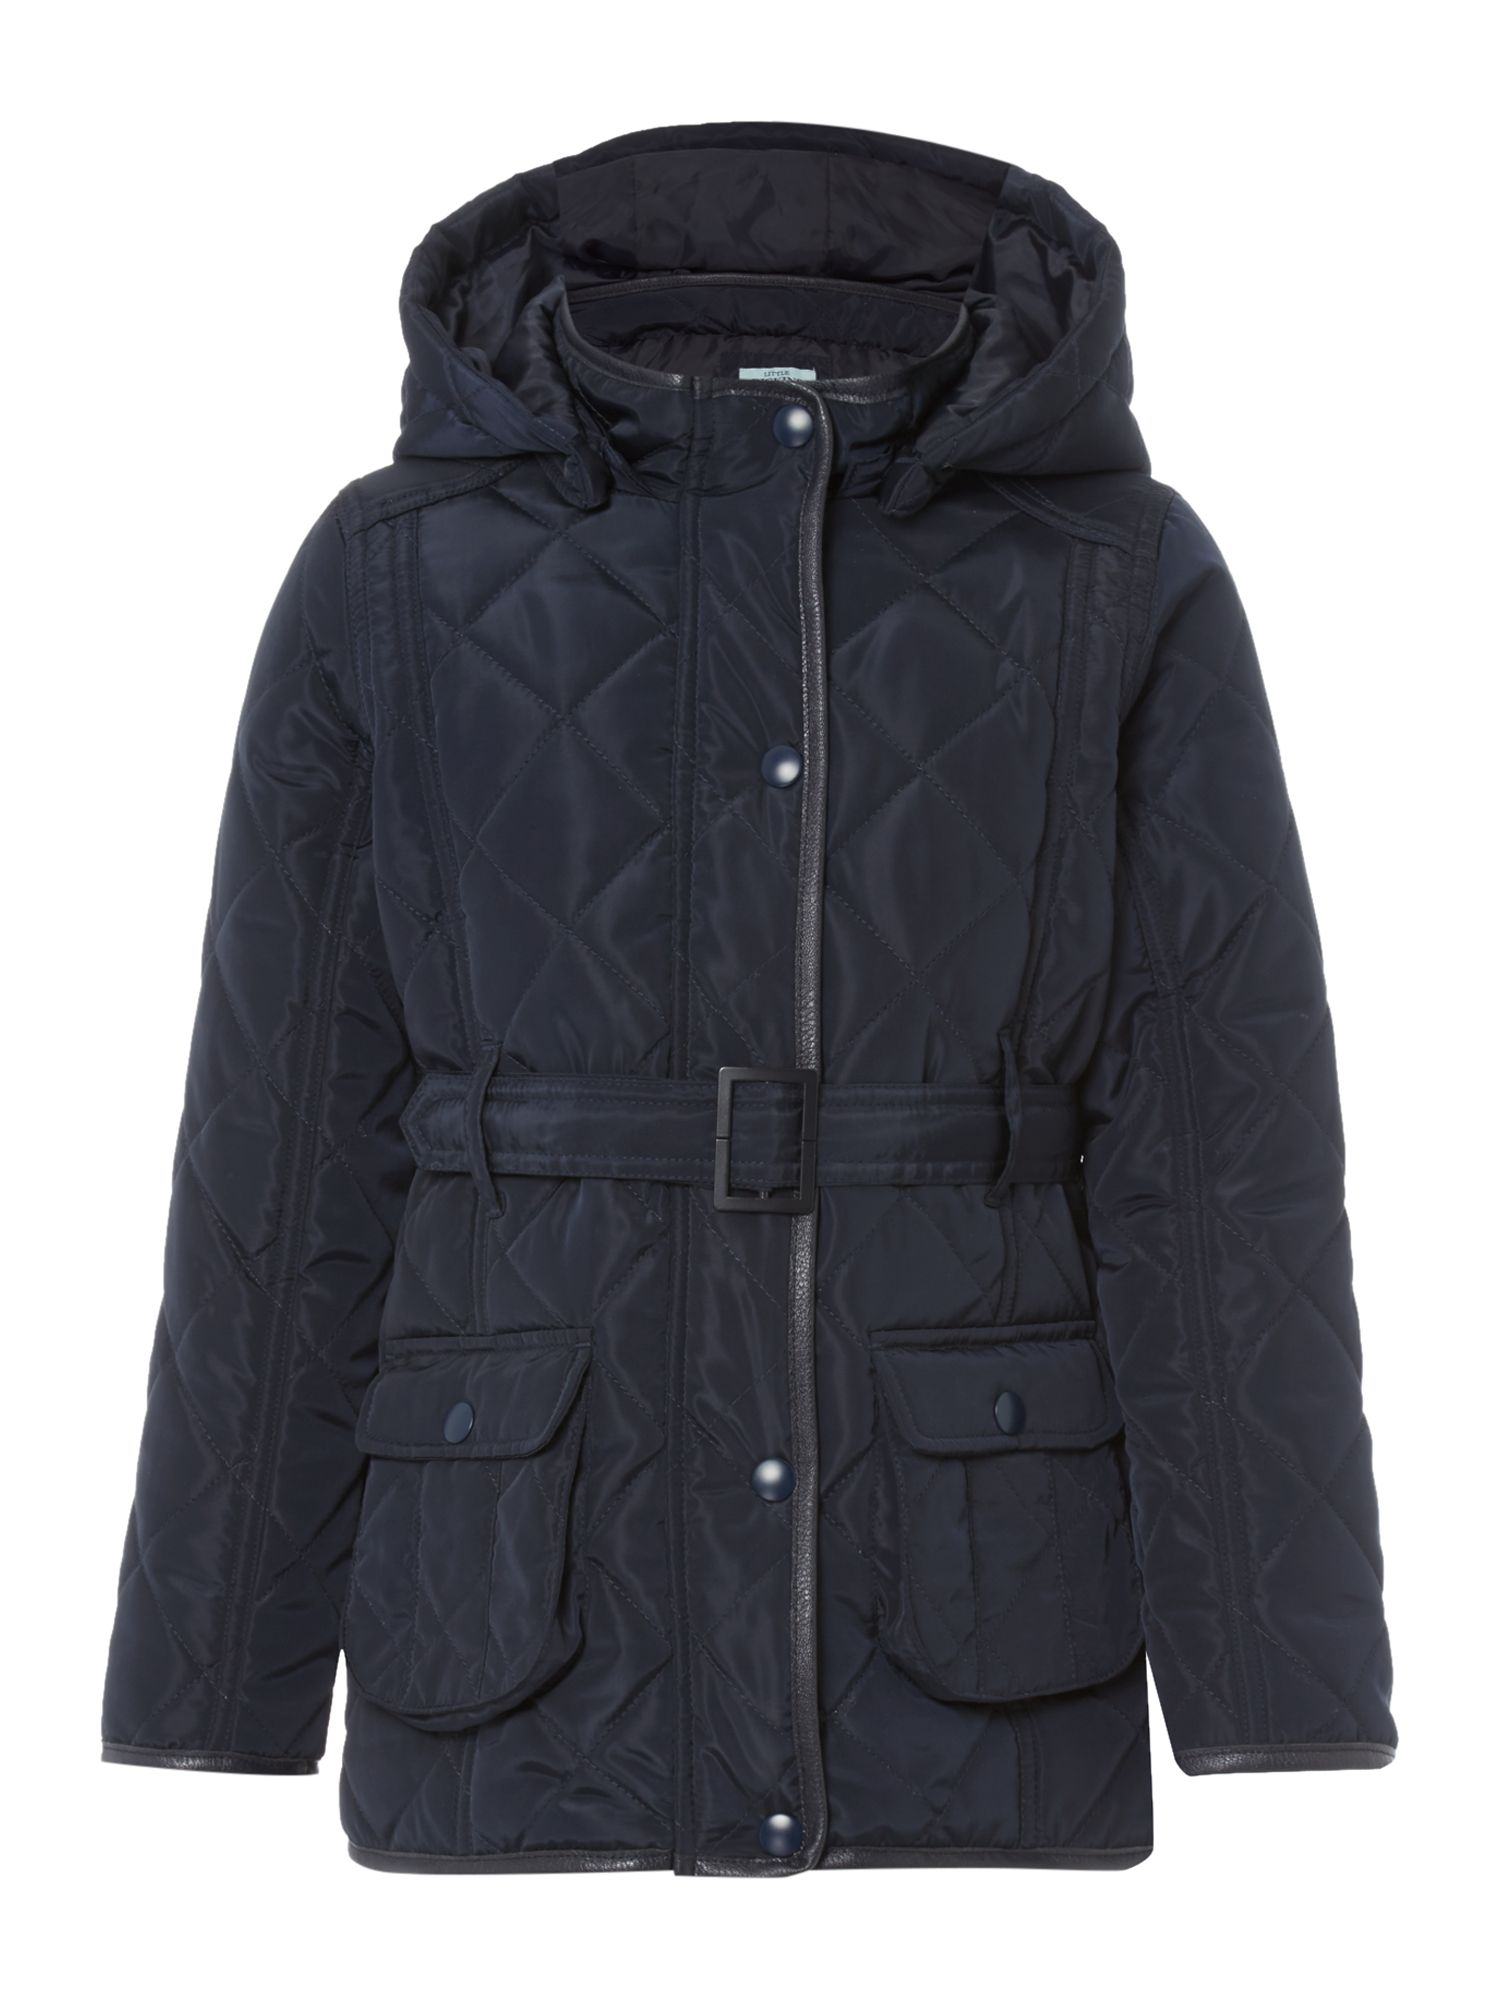 Little Dickins & Jones Little Dickins & Jones Girls Quilted jacket with hood, Navy